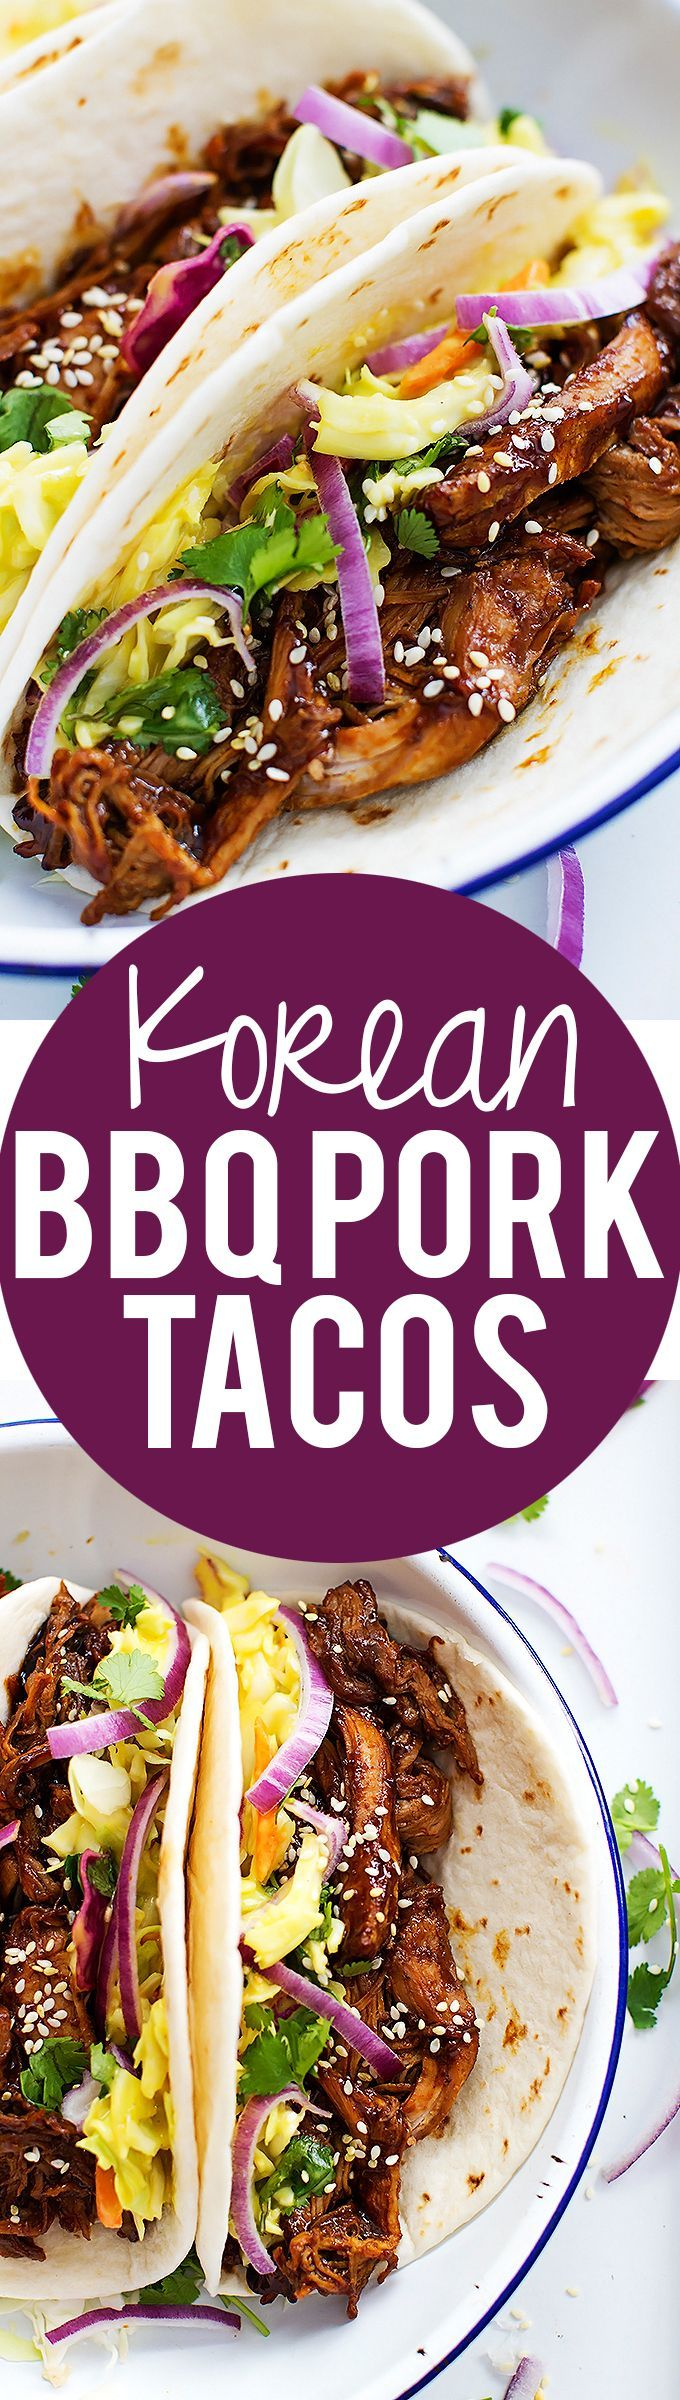 Slow Cooker Korean BBQ Pork Tacos | Creme de la Crumb